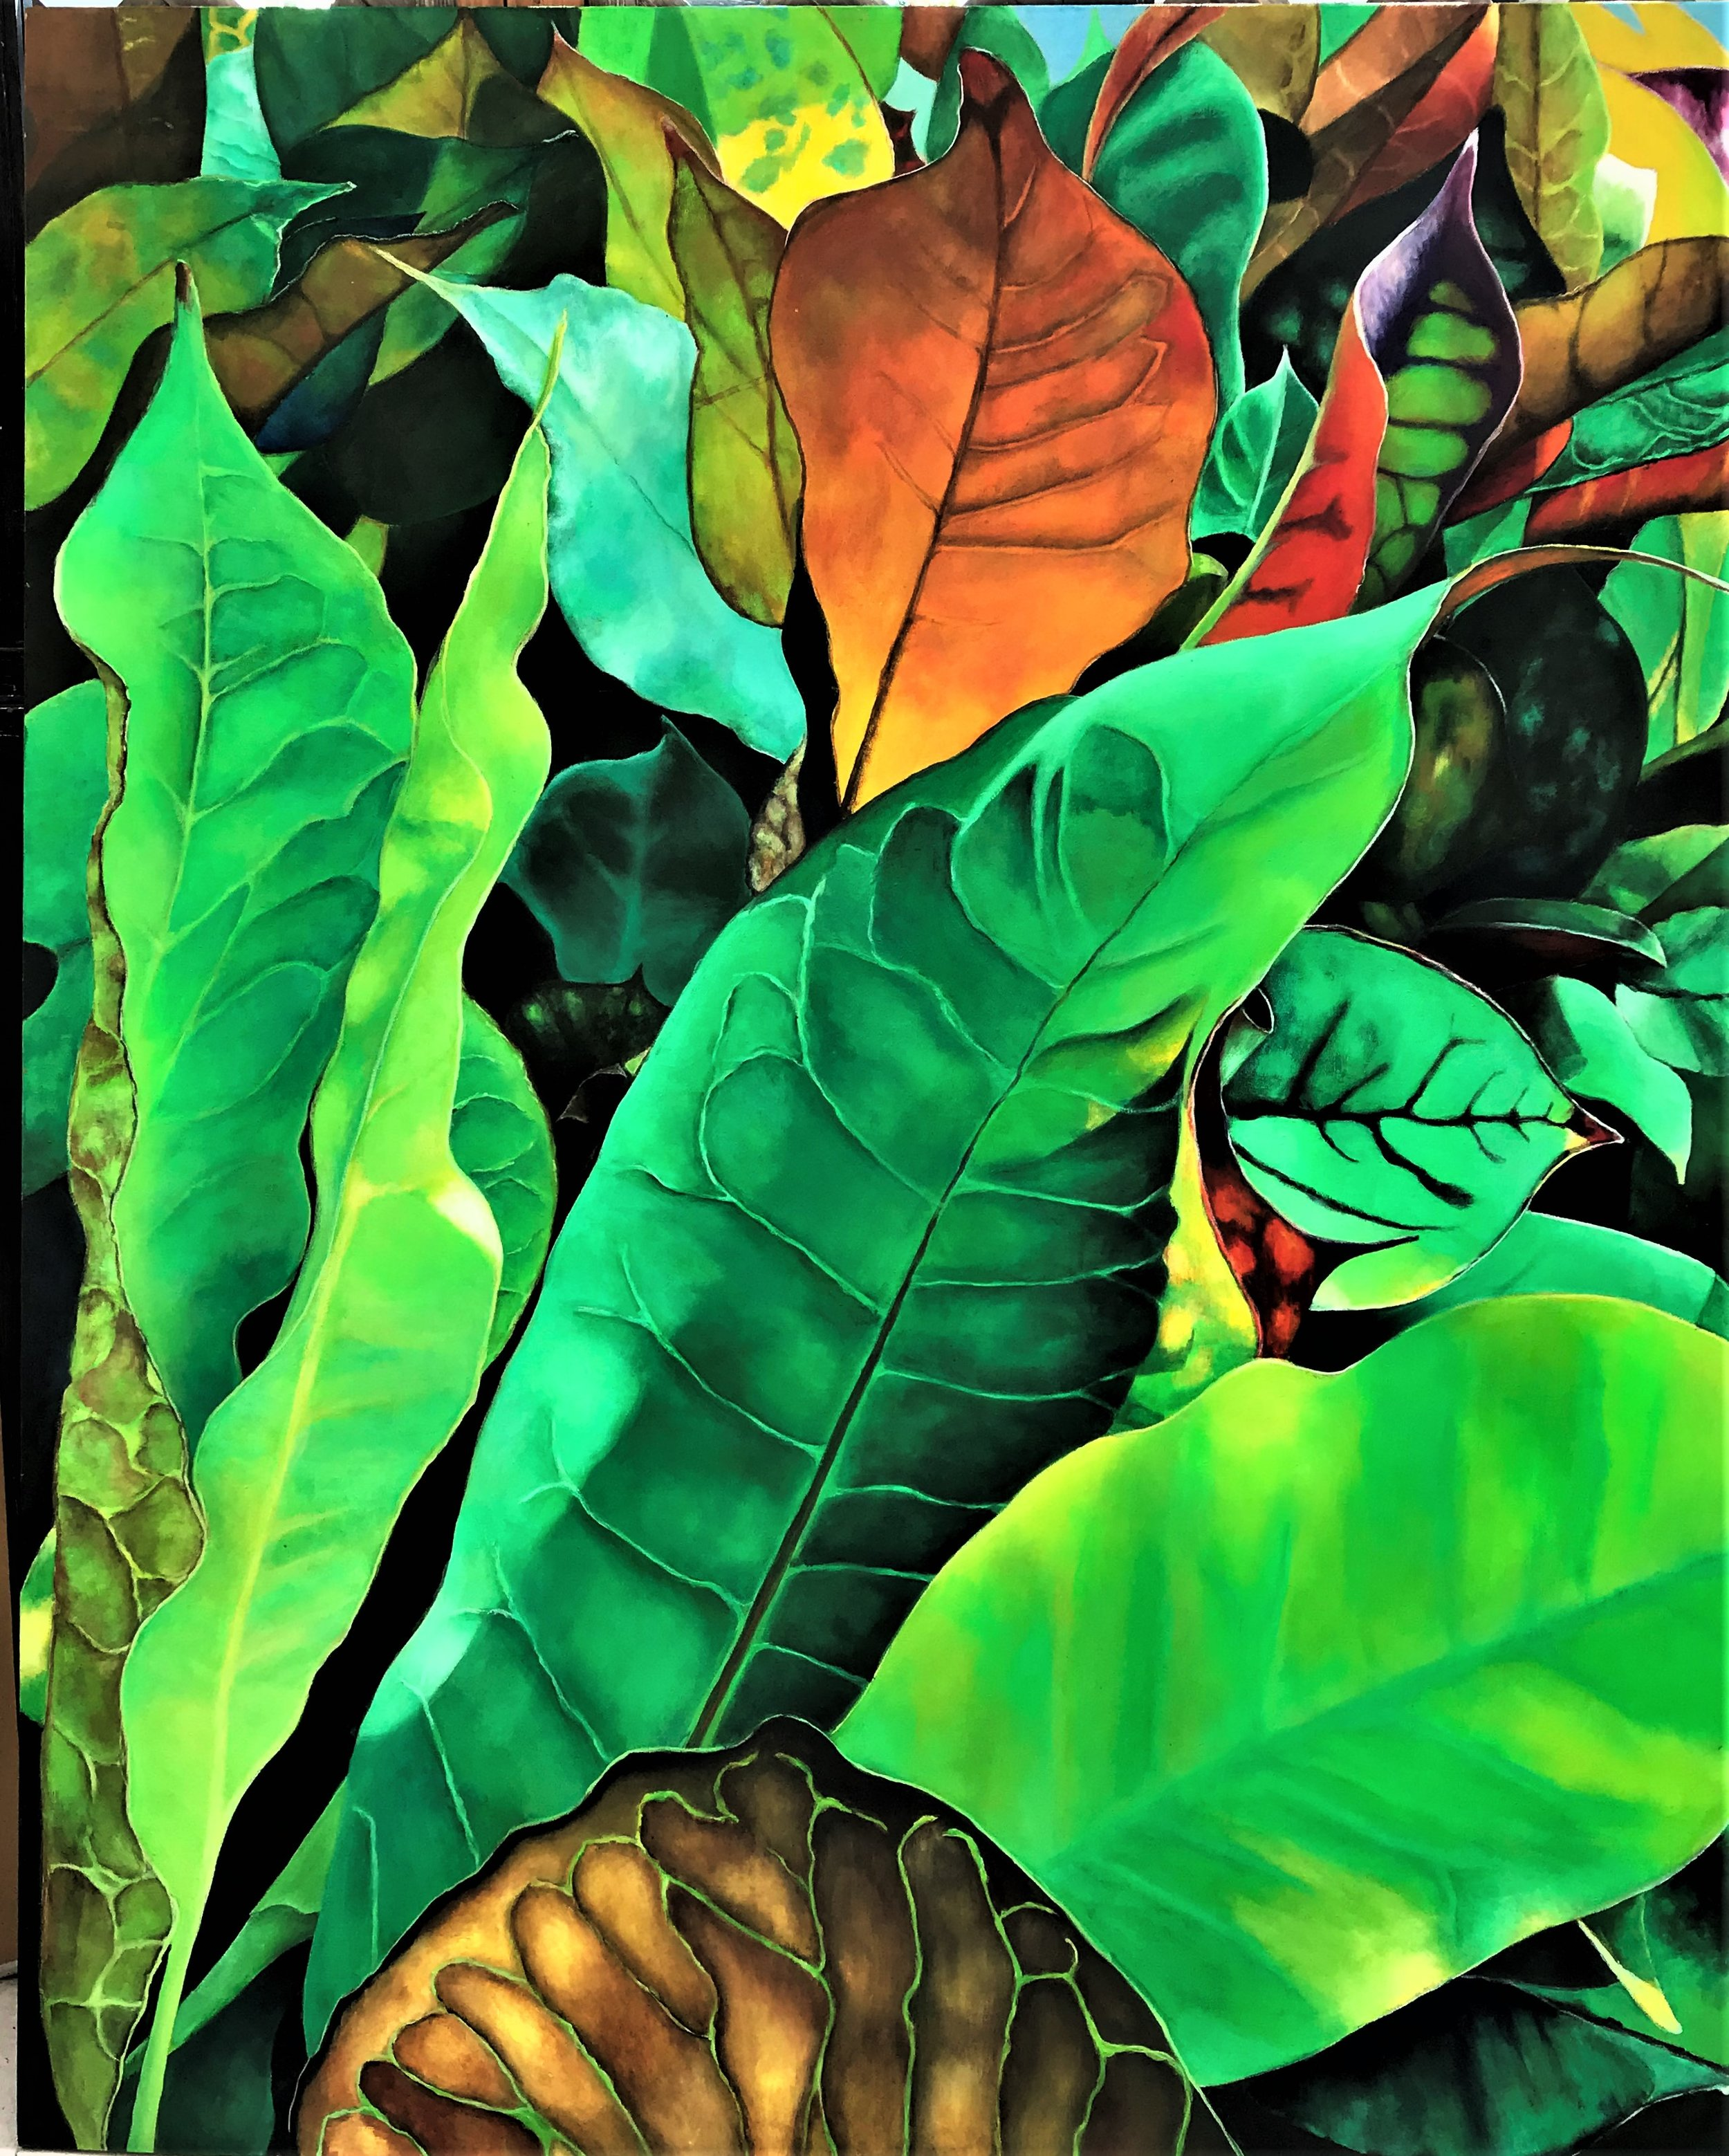 Tropical Foliage VII